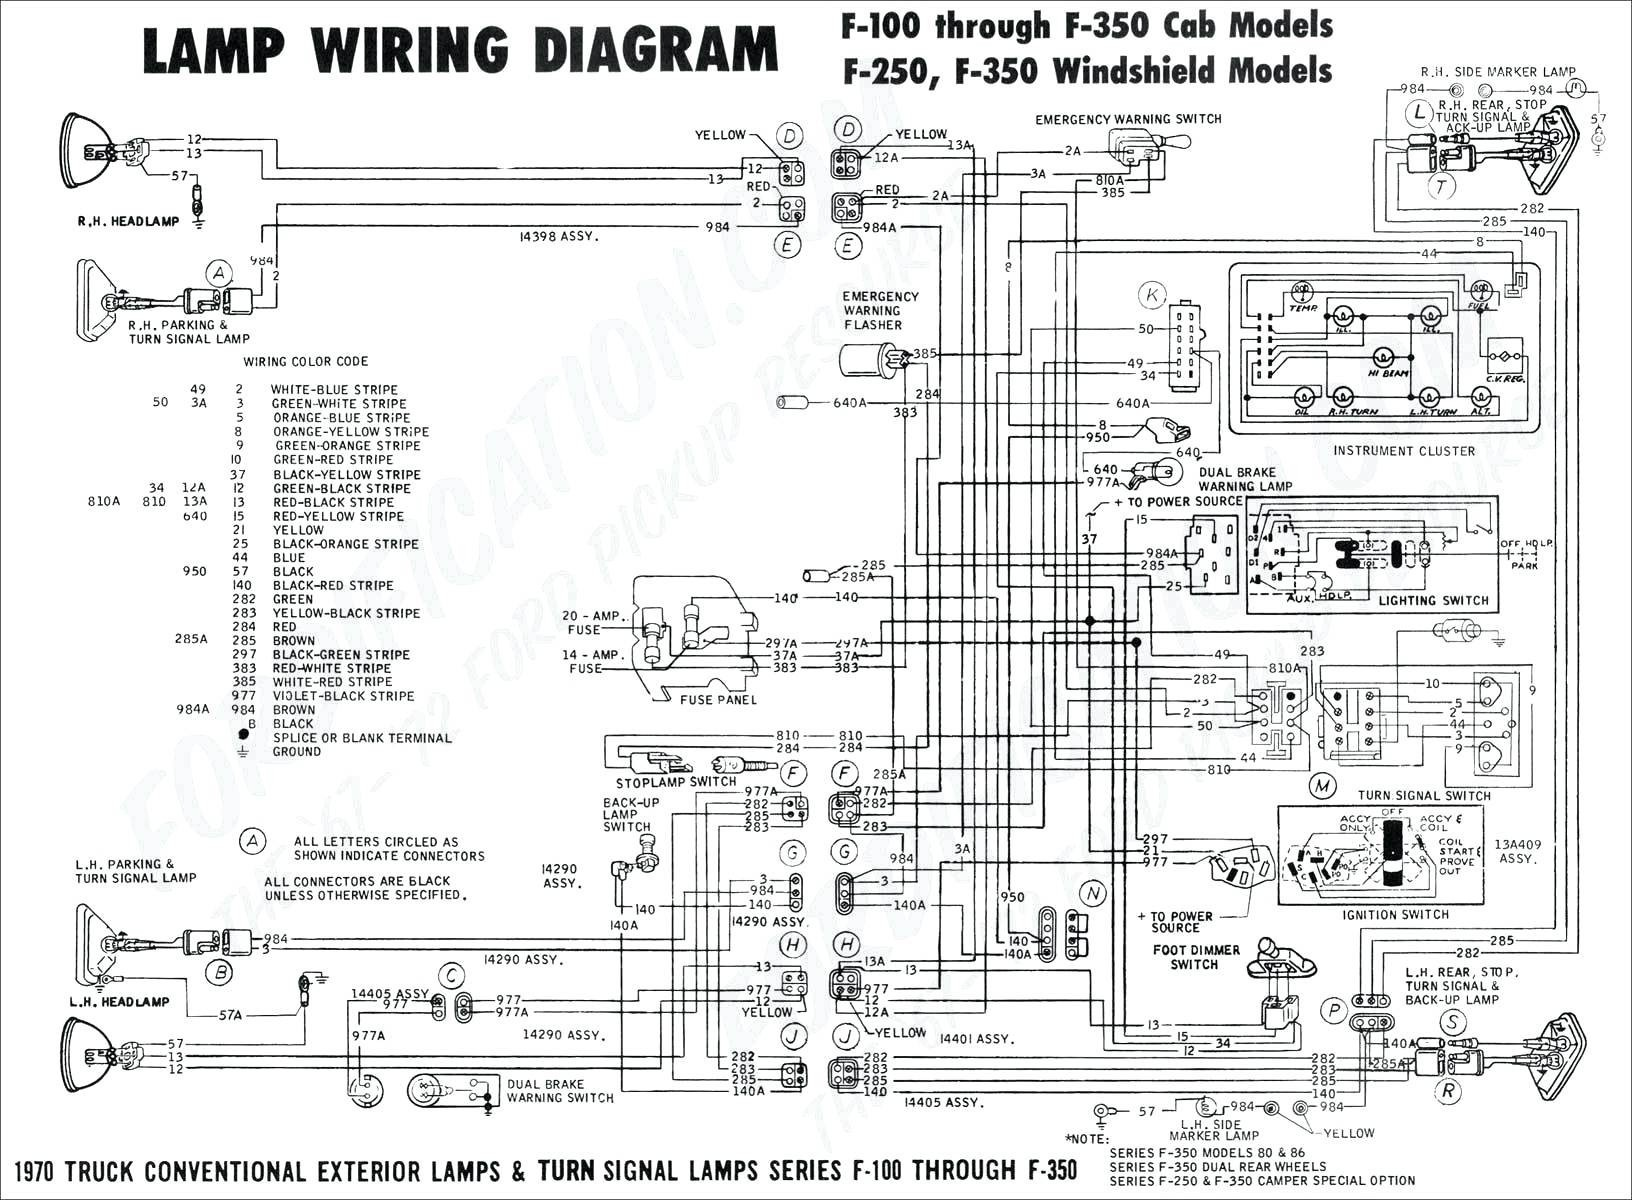 Mercruiser 140 Engine Diagram 2000 ford Ranger Horn Wiring Another Blog About Wiring Diagram • Of Mercruiser 140 Engine Diagram Fuel Pump and Carburetor Old Design for Mercruiser 120 H P 2 5l140